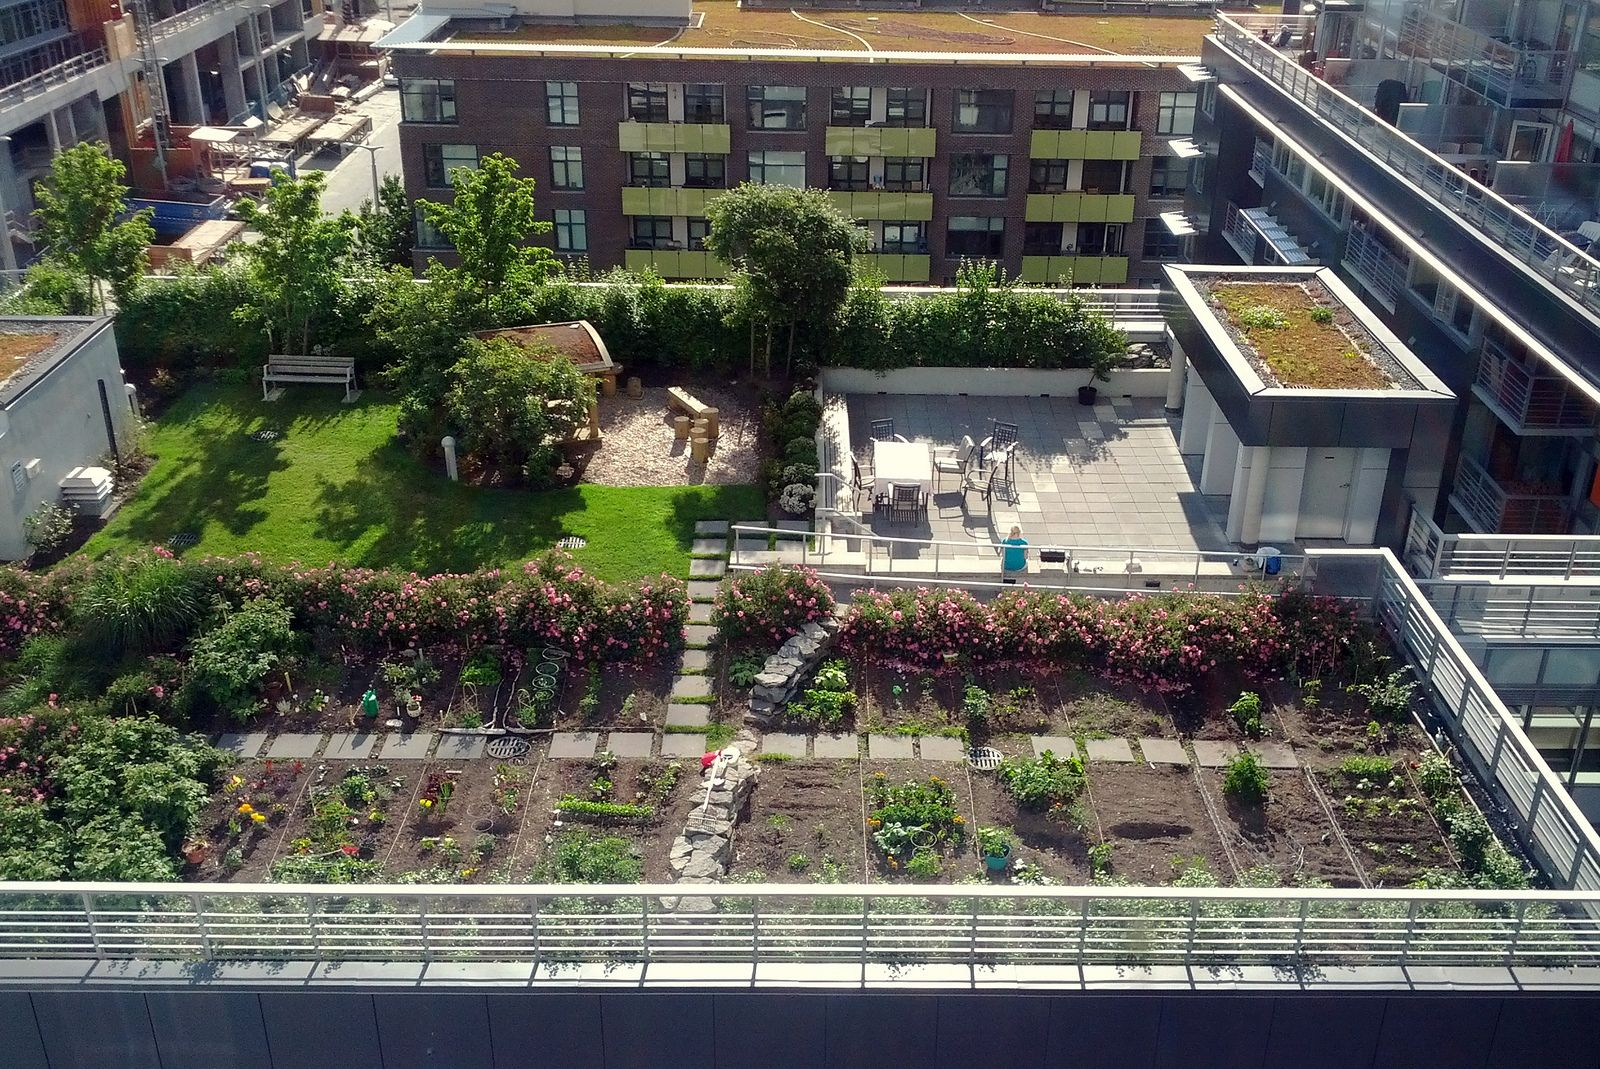 Inspirations Modern And Simple Roof Garden Design For Eco Friendly Ideas Rooftop On The Apartment In City